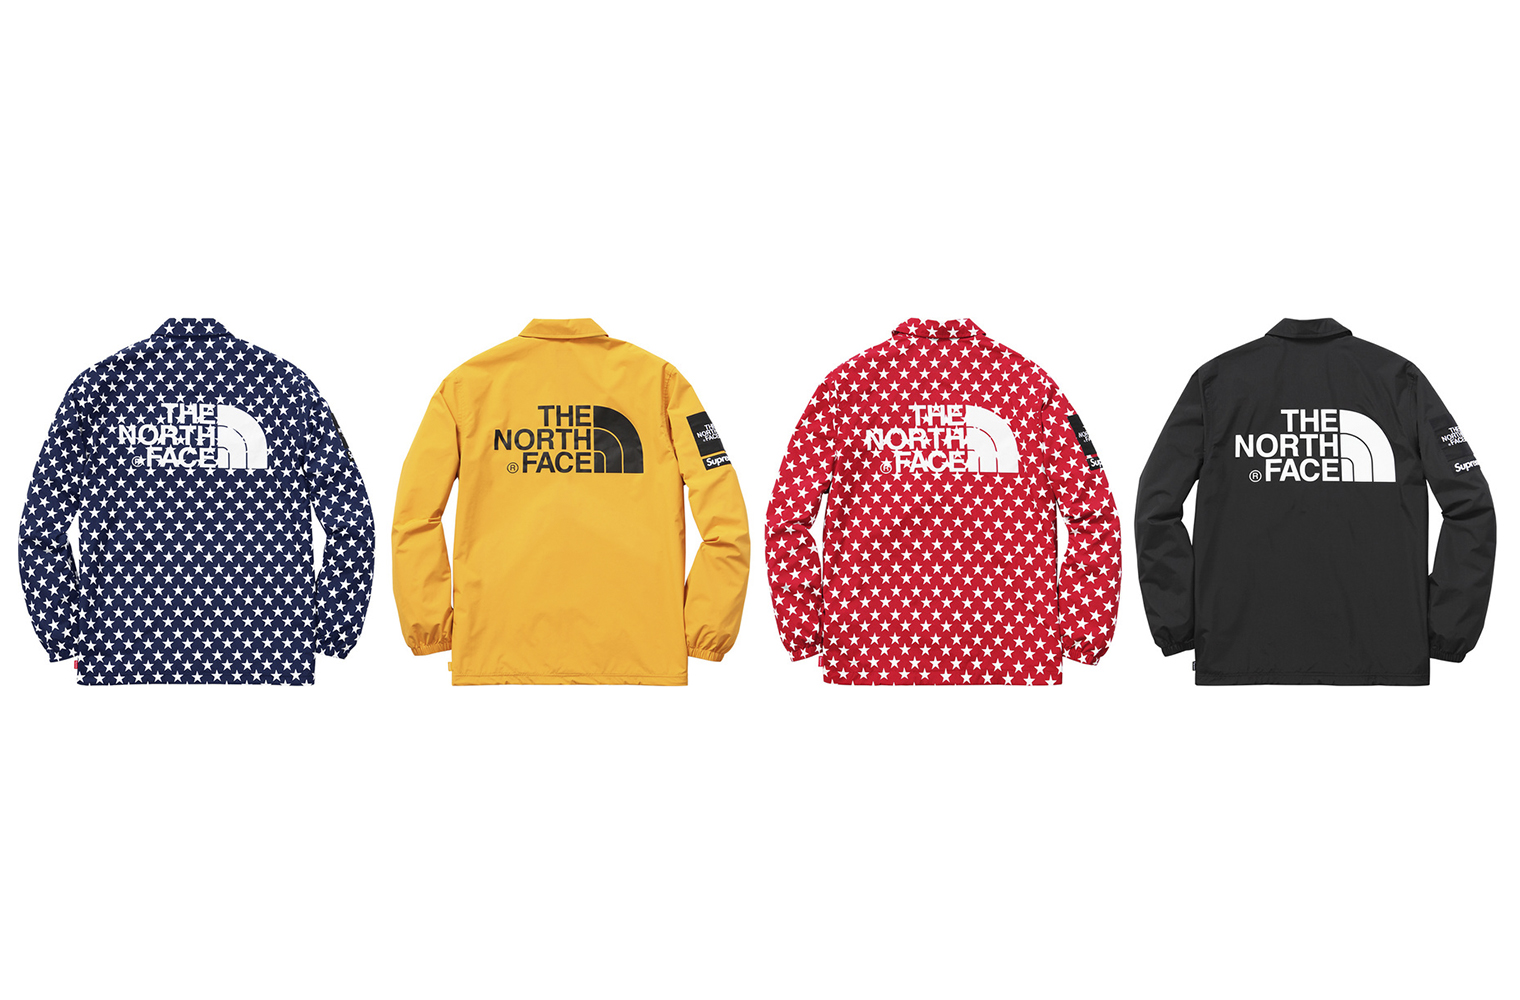 Supreme x The North Face Spring/Summer 2015